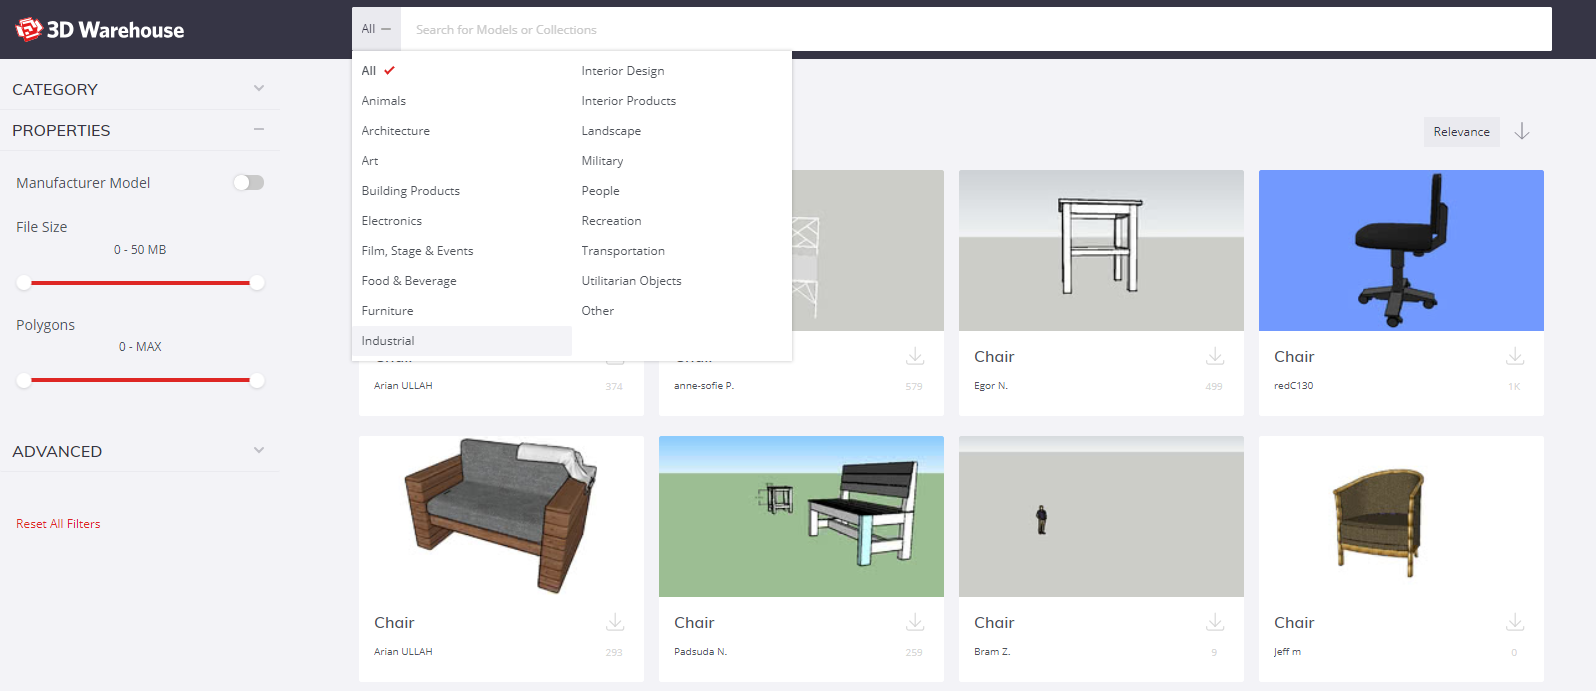 3D Warehouse's new categories feature in action.